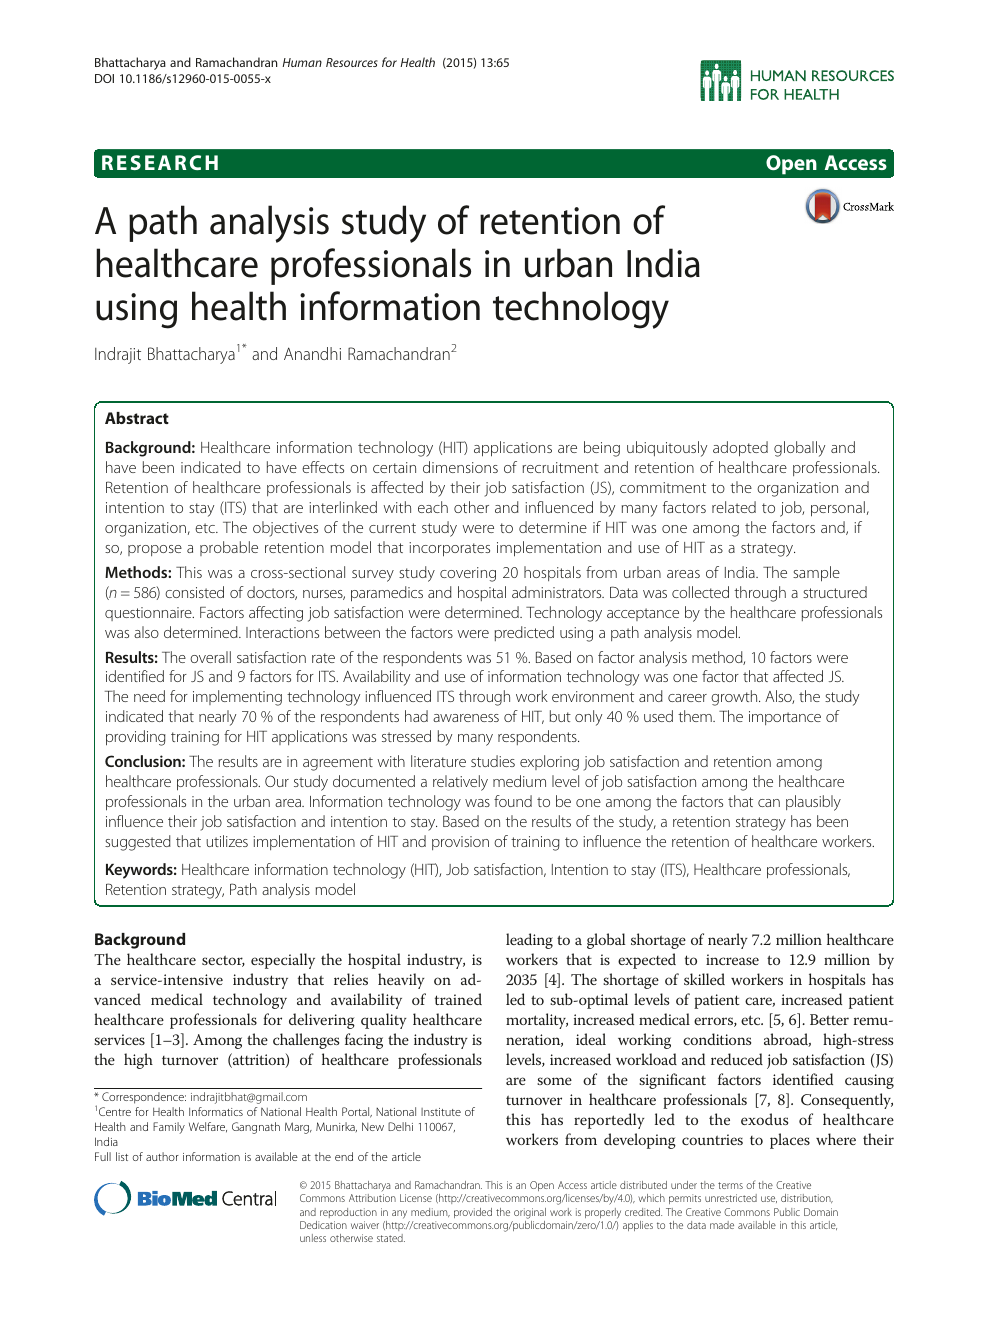 A path analysis study of retention of healthcare professionals in